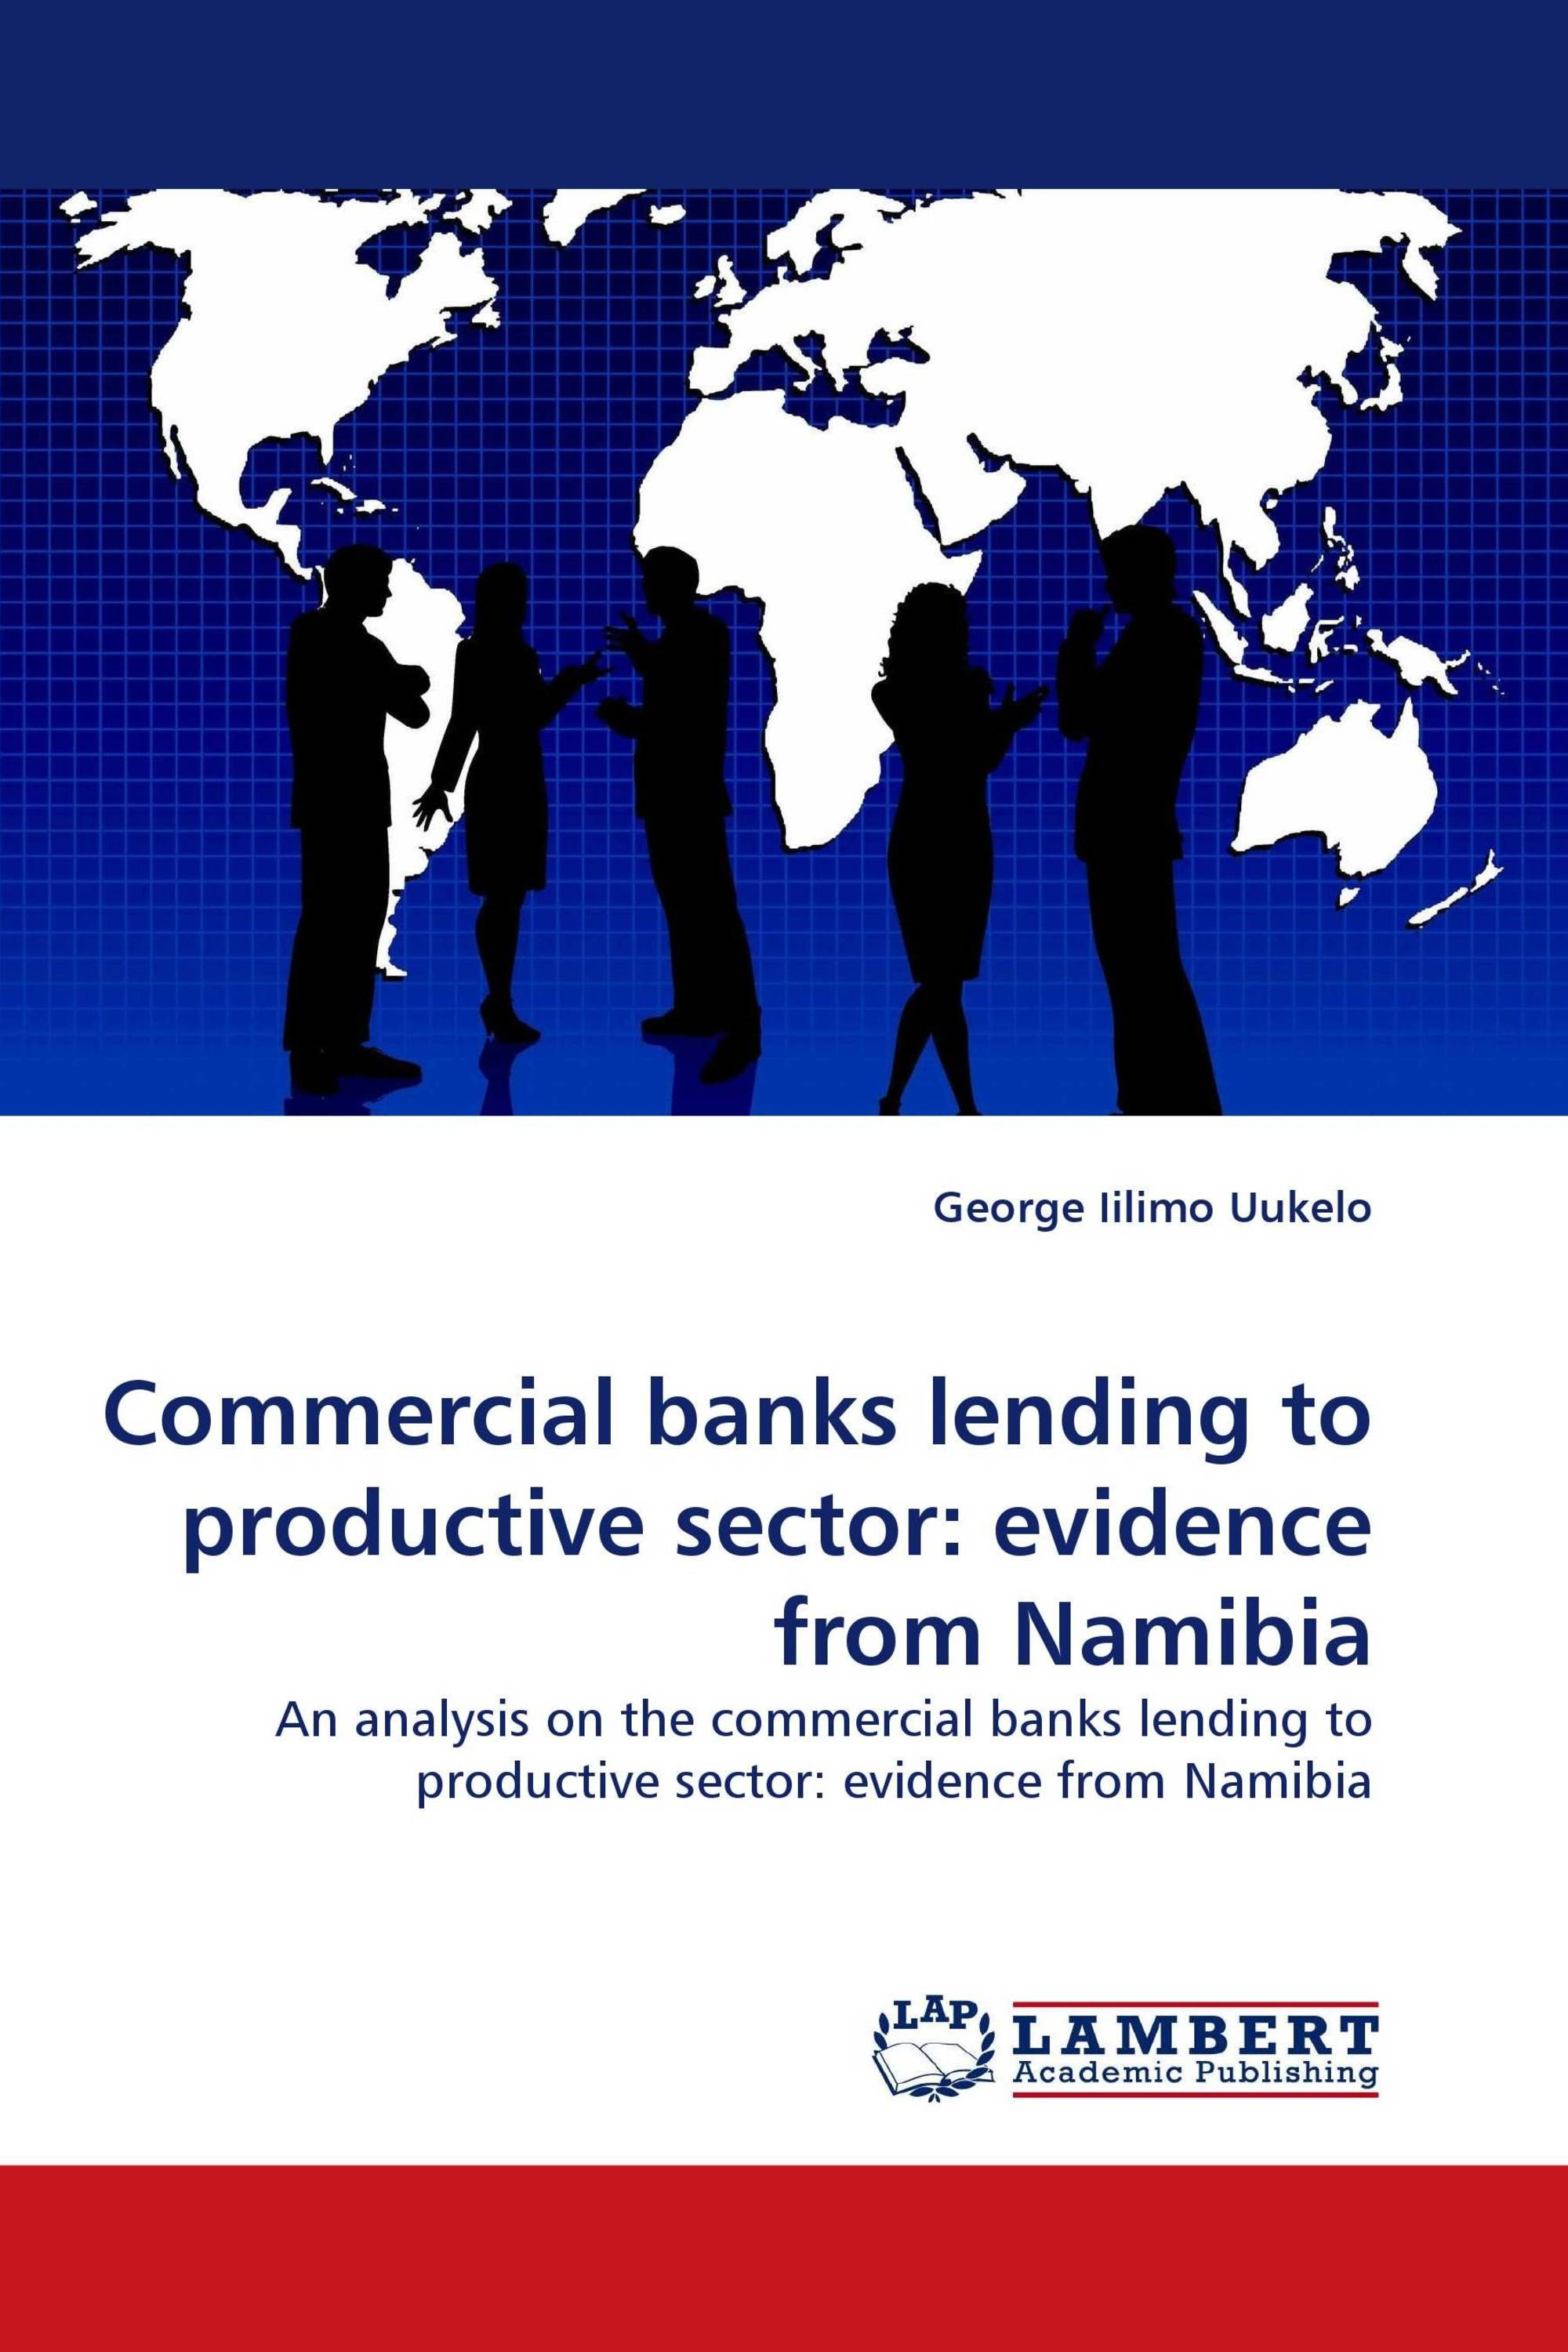 Commercial banks lending to productive sector: evidence from Namibia